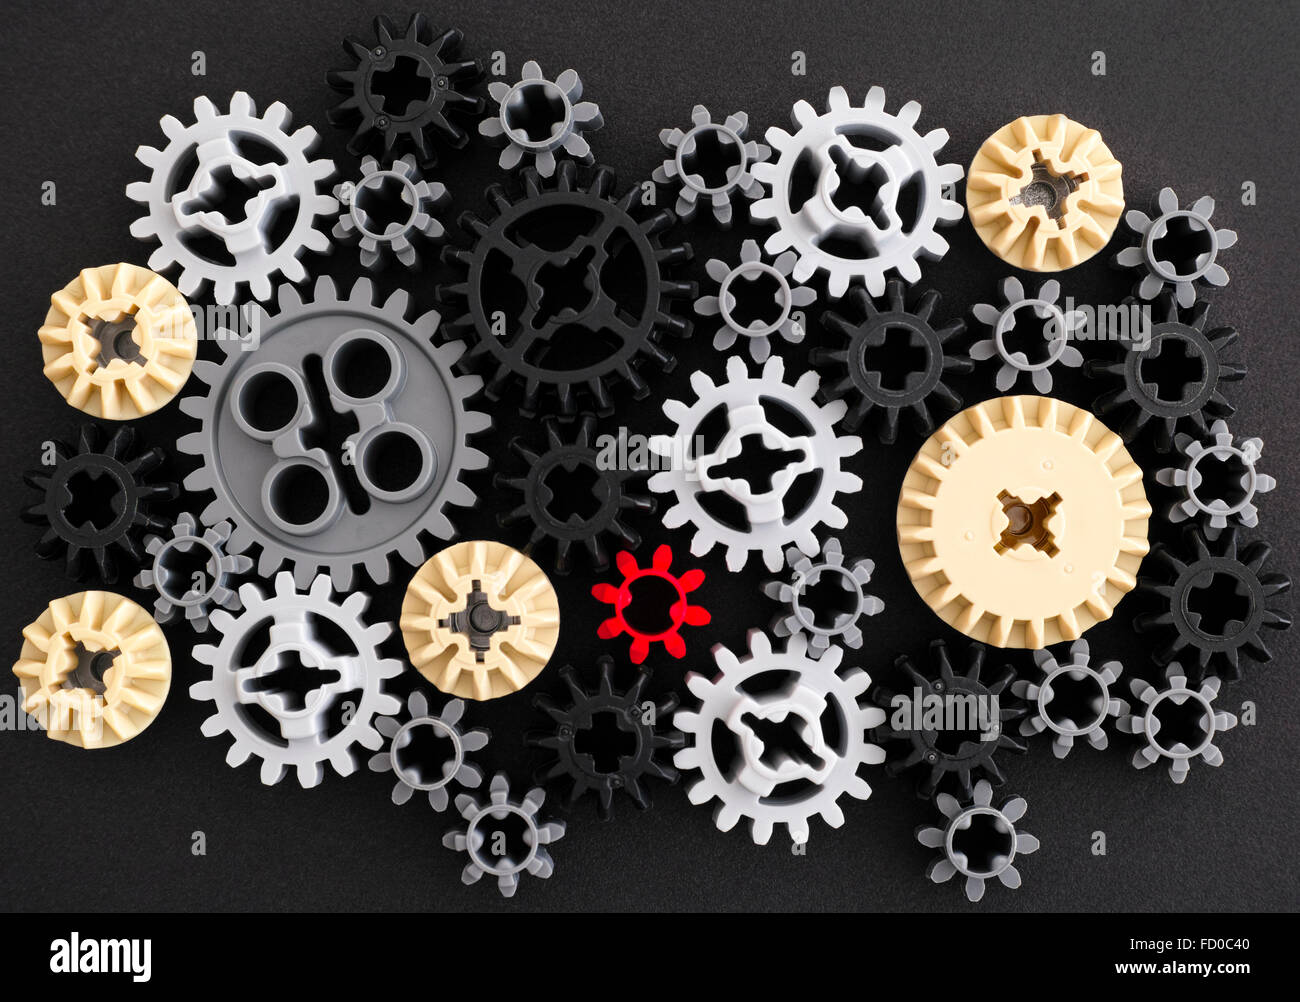 Plastic gears on black background - Stock Image